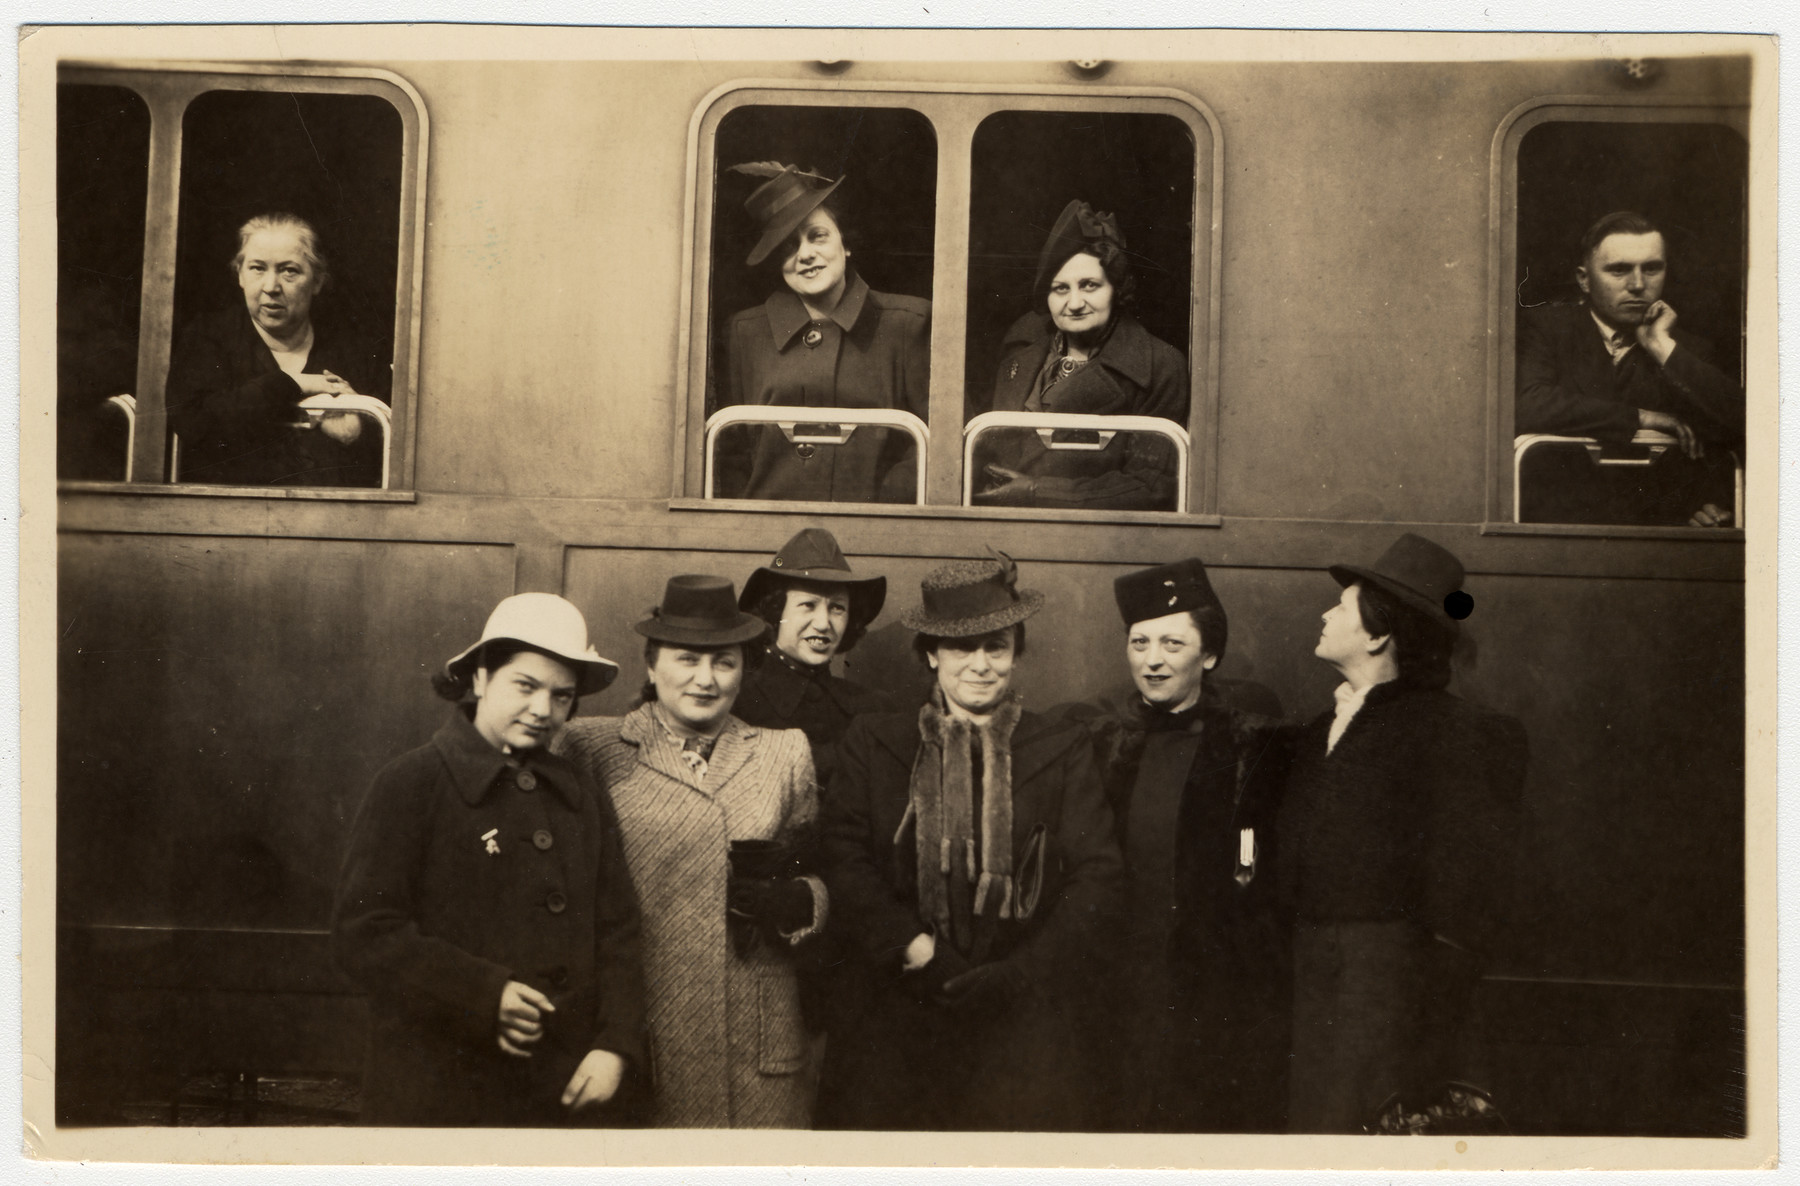 A group of women pose outside a train in the Budapest station.  Peering from the window is Lilly Brod who is about to depart for the United States.